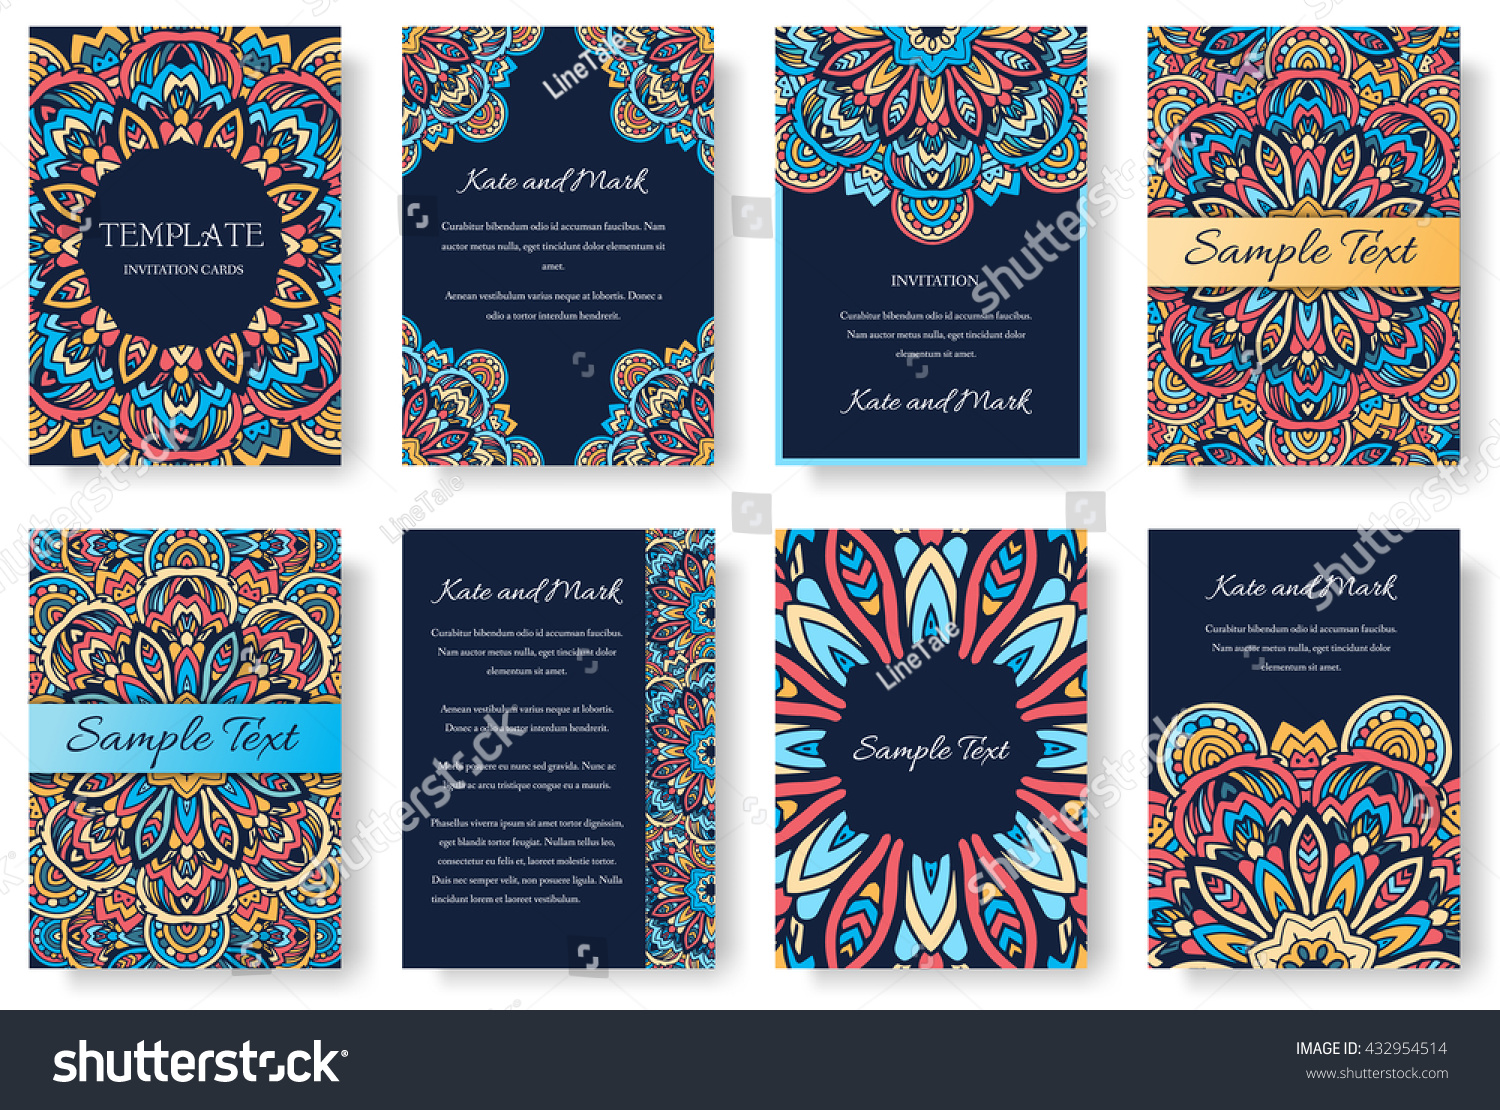 Set of old ramadan flyer pages ornament illustration concept Vintage art traditional Islam arabic indian magazine elements Vector decorative retro greeting card or invitation layout design